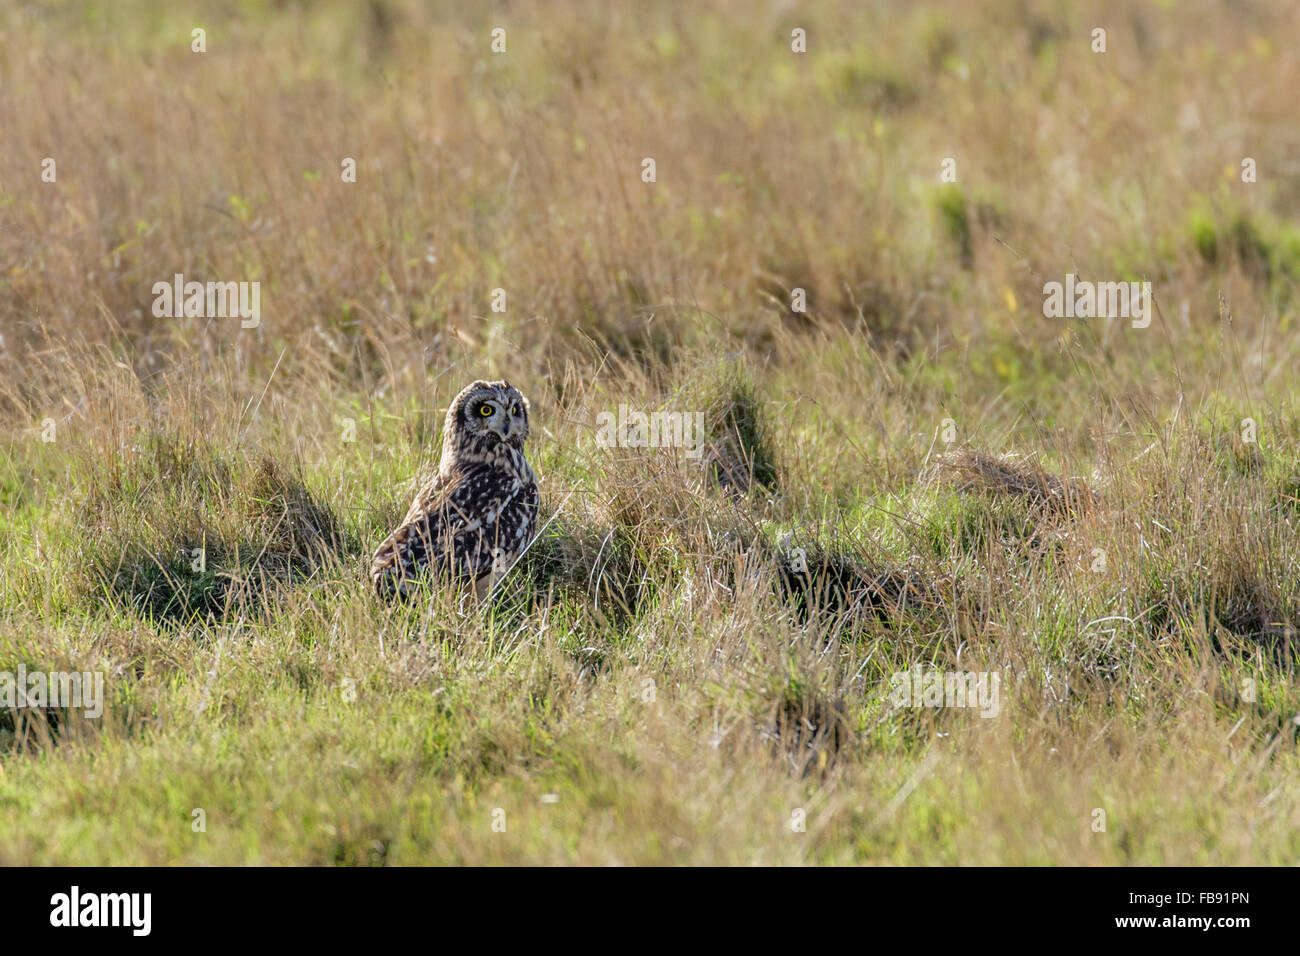 Short-eared Owl (Asio flammeus) resting among the long grass in a meadow. - Stock Image